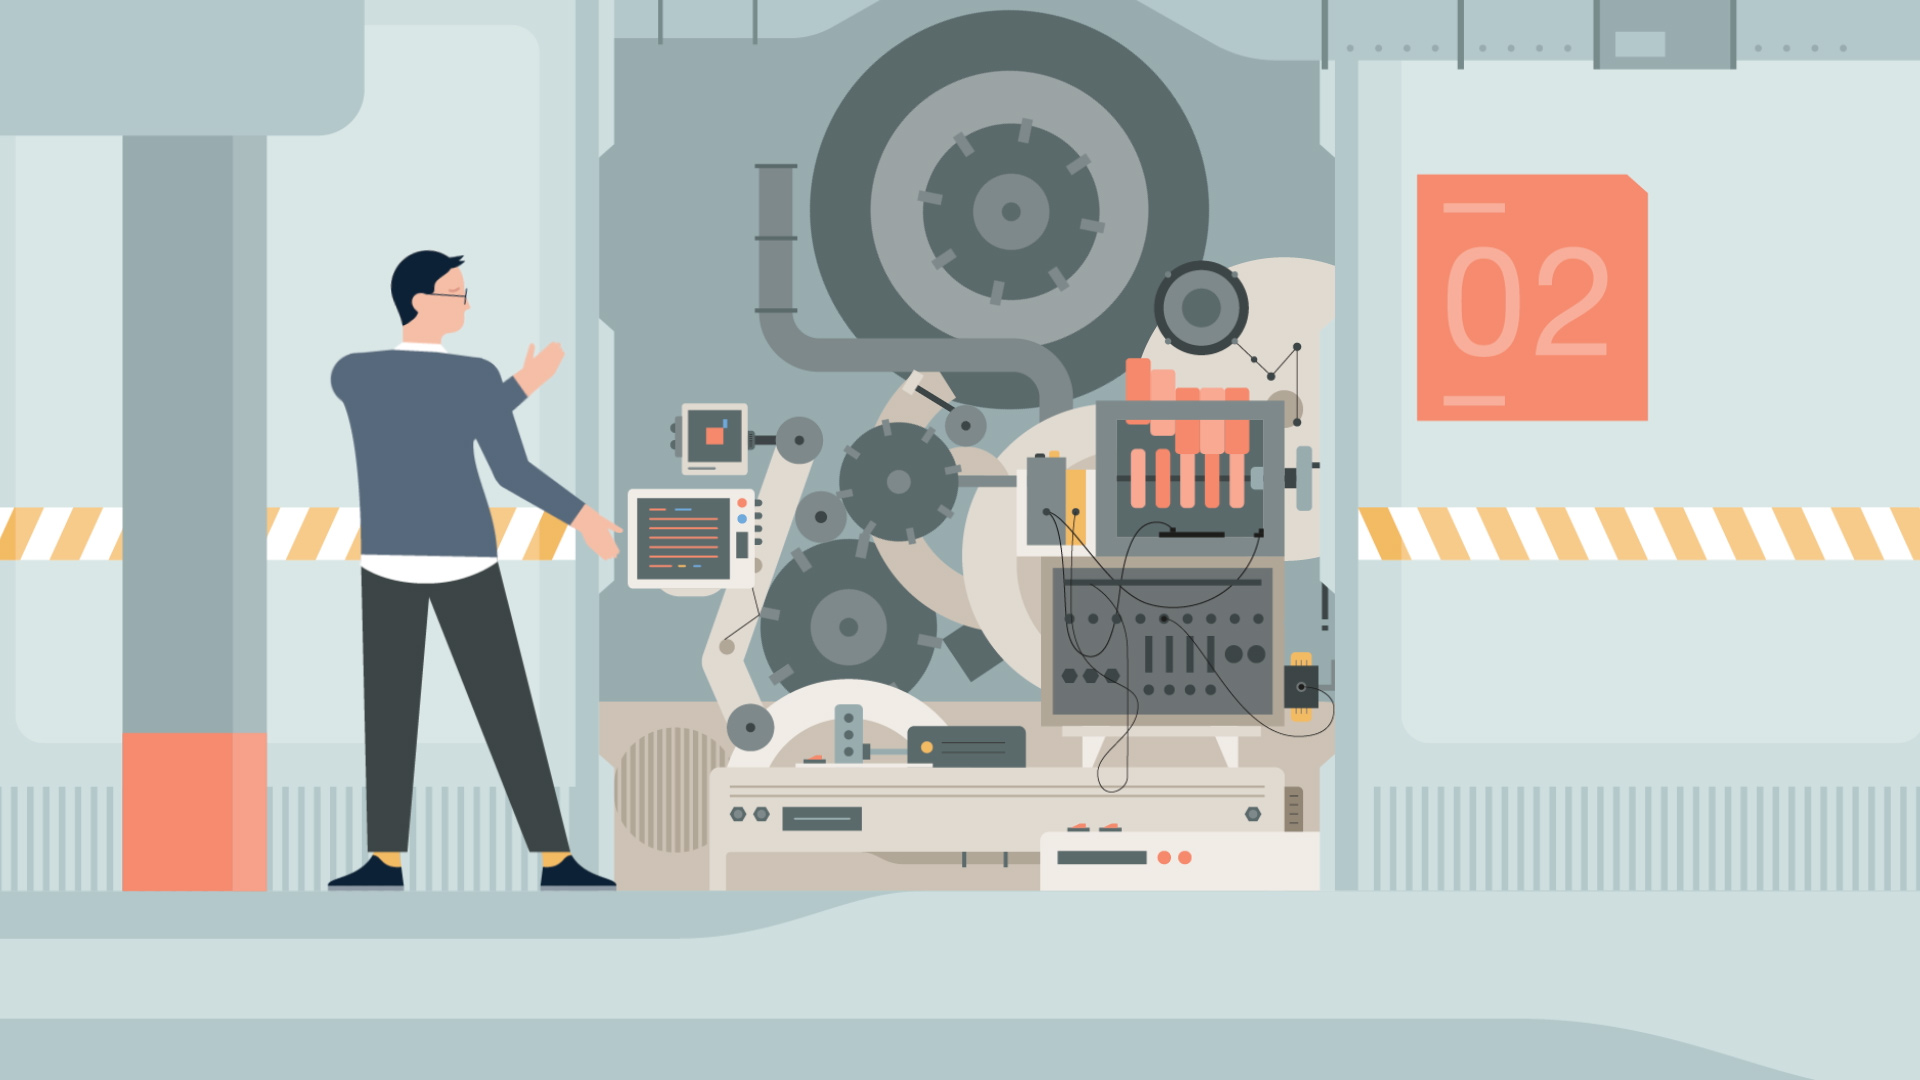 Illustration of a big machine. LinkedIn funtionalities video animation